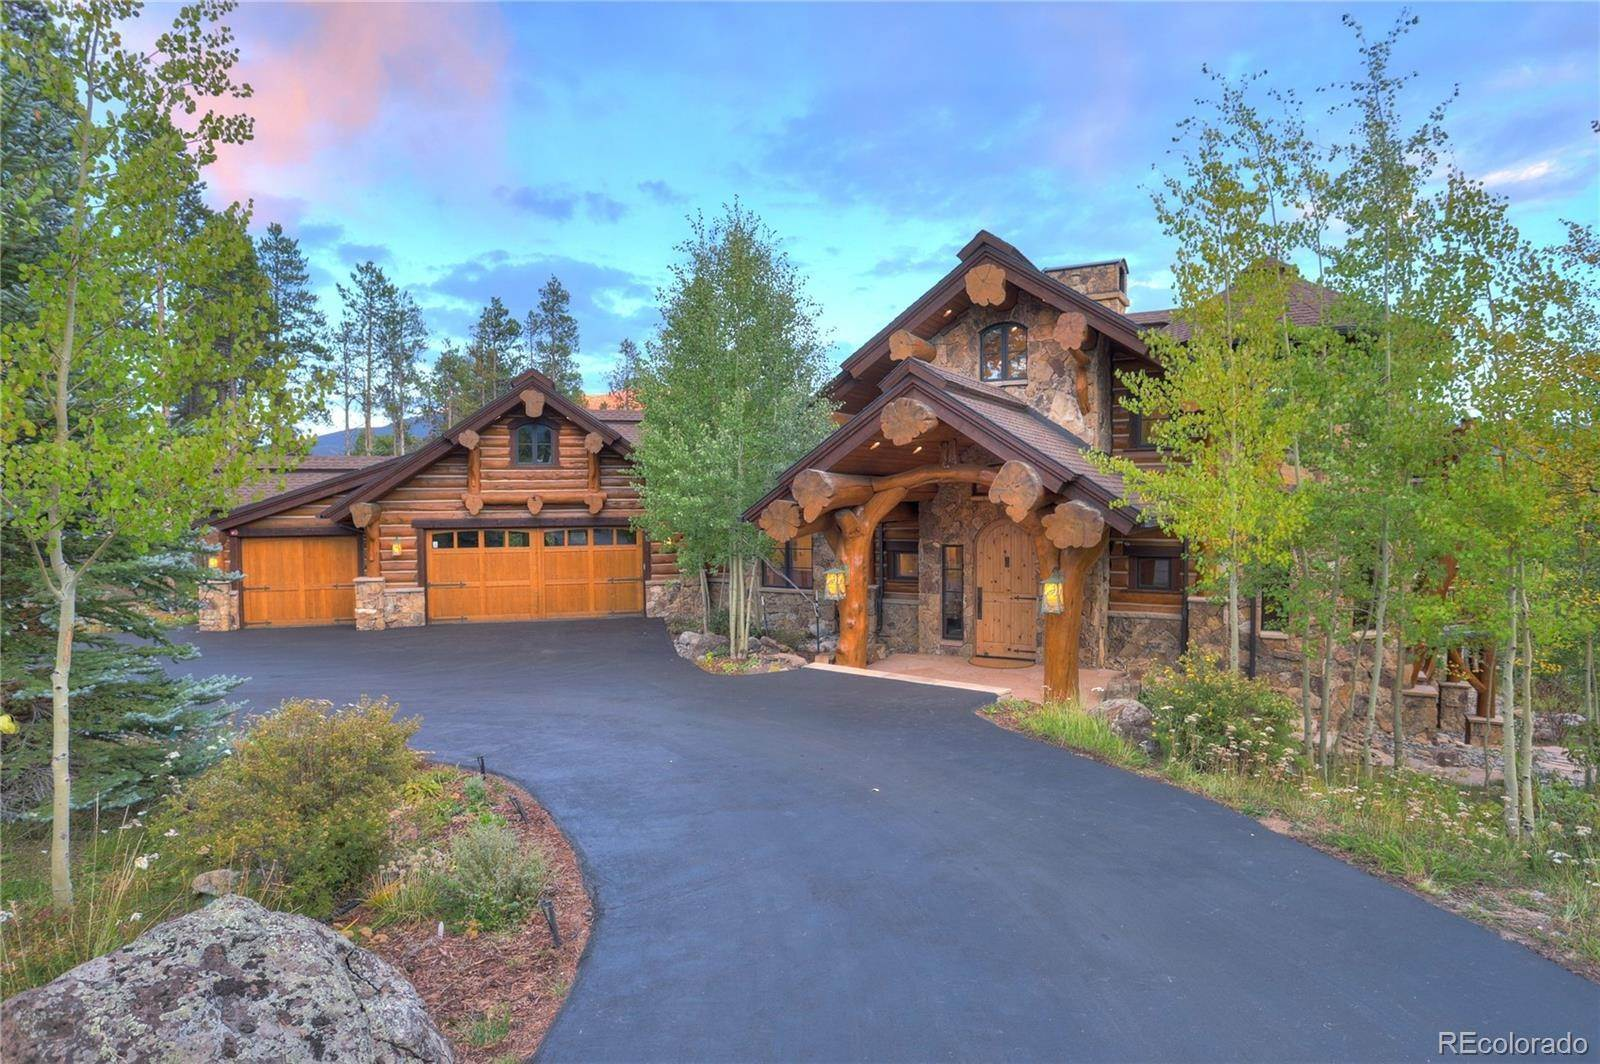 Single Family Homes for Sale at 56 Wild Cat Road Breckenridge, Colorado 80424 United States